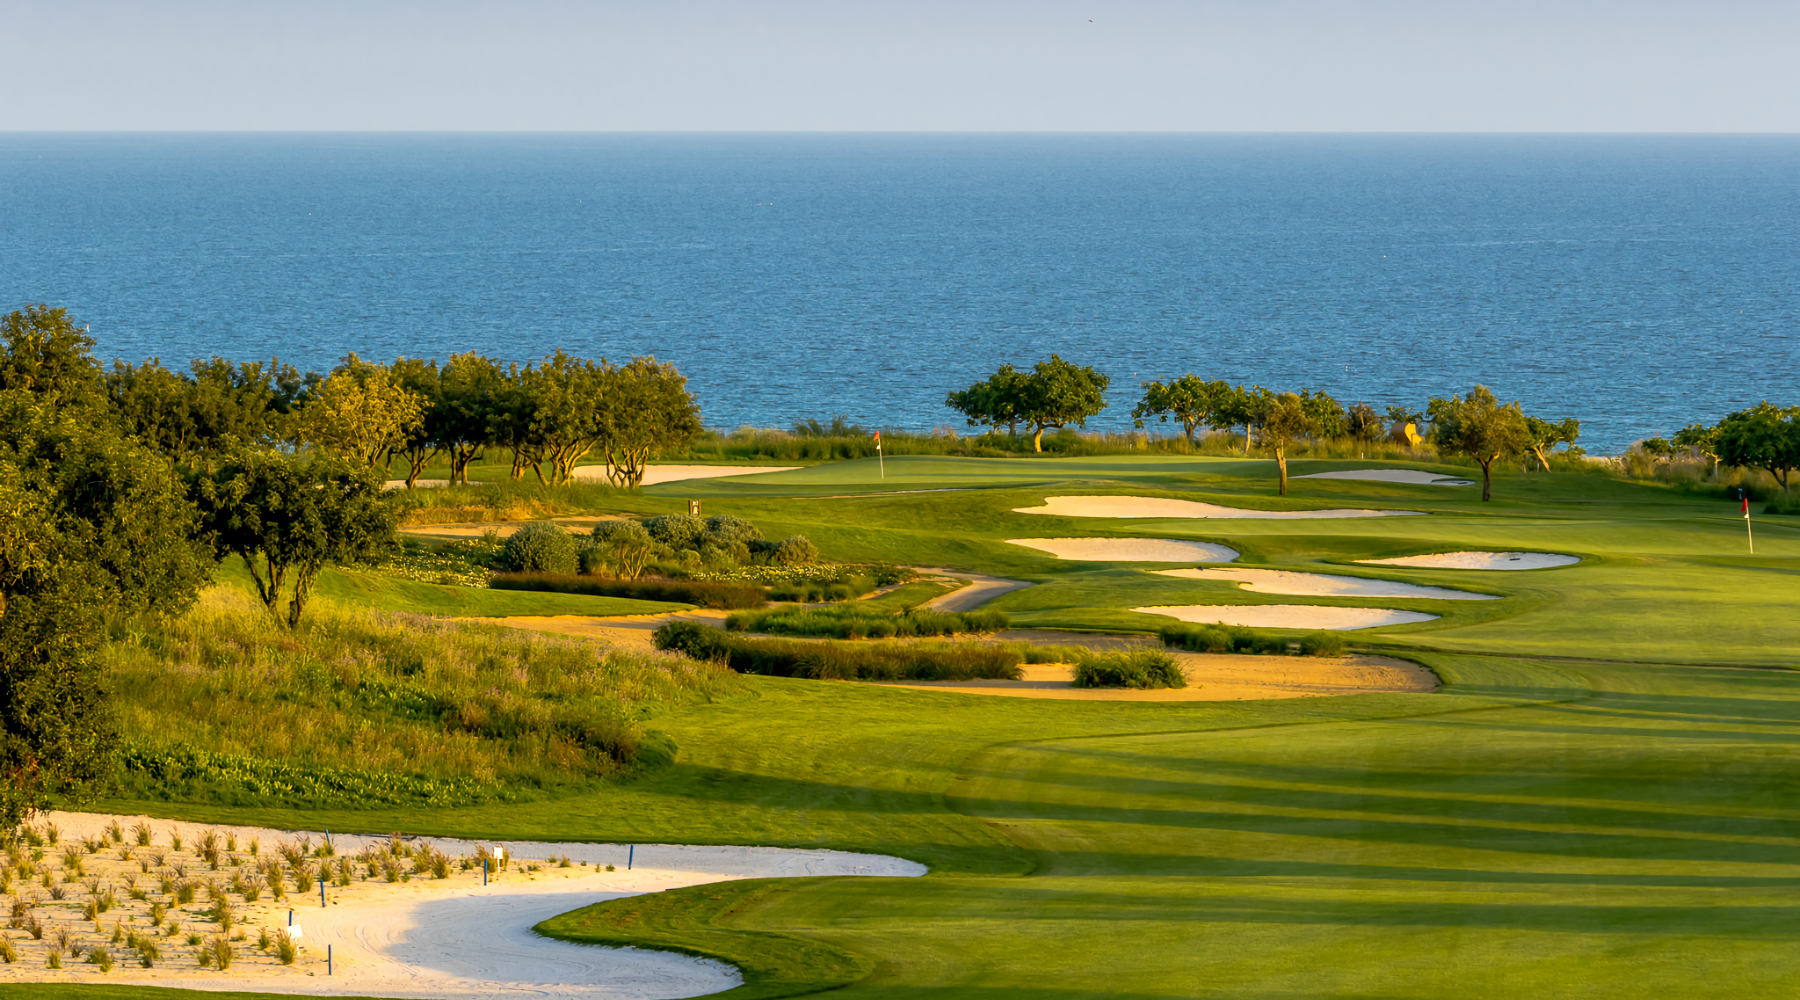 Golf course Quinta da Ria green near the sea